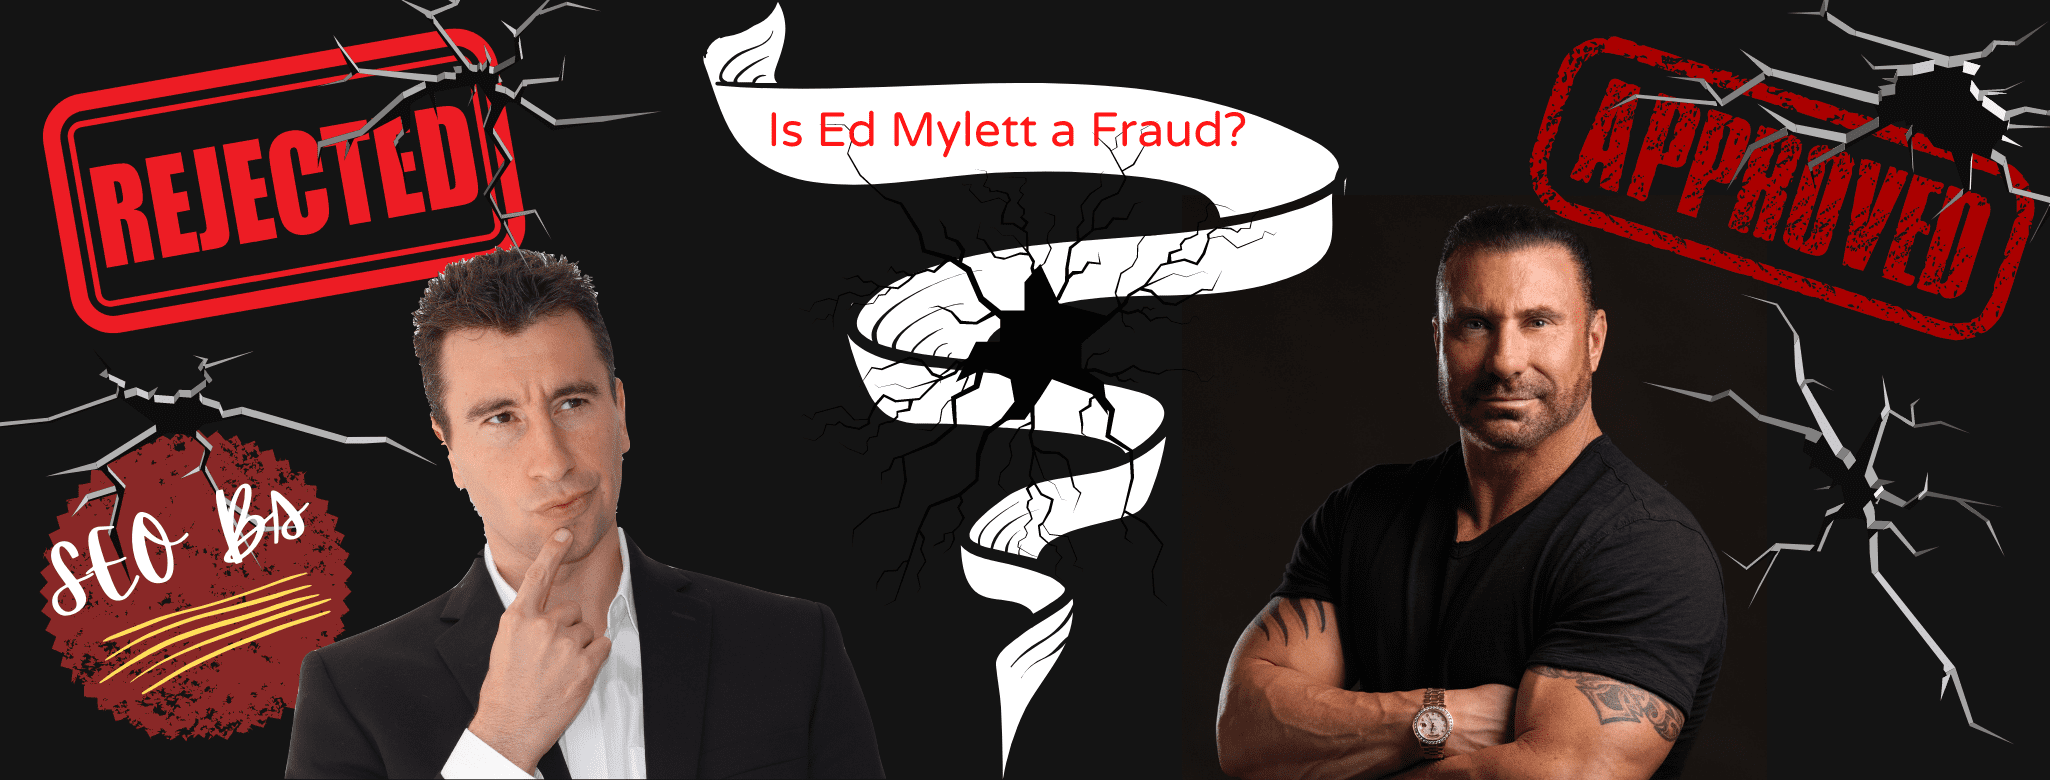 picture of is Ed Mylett a Fraud